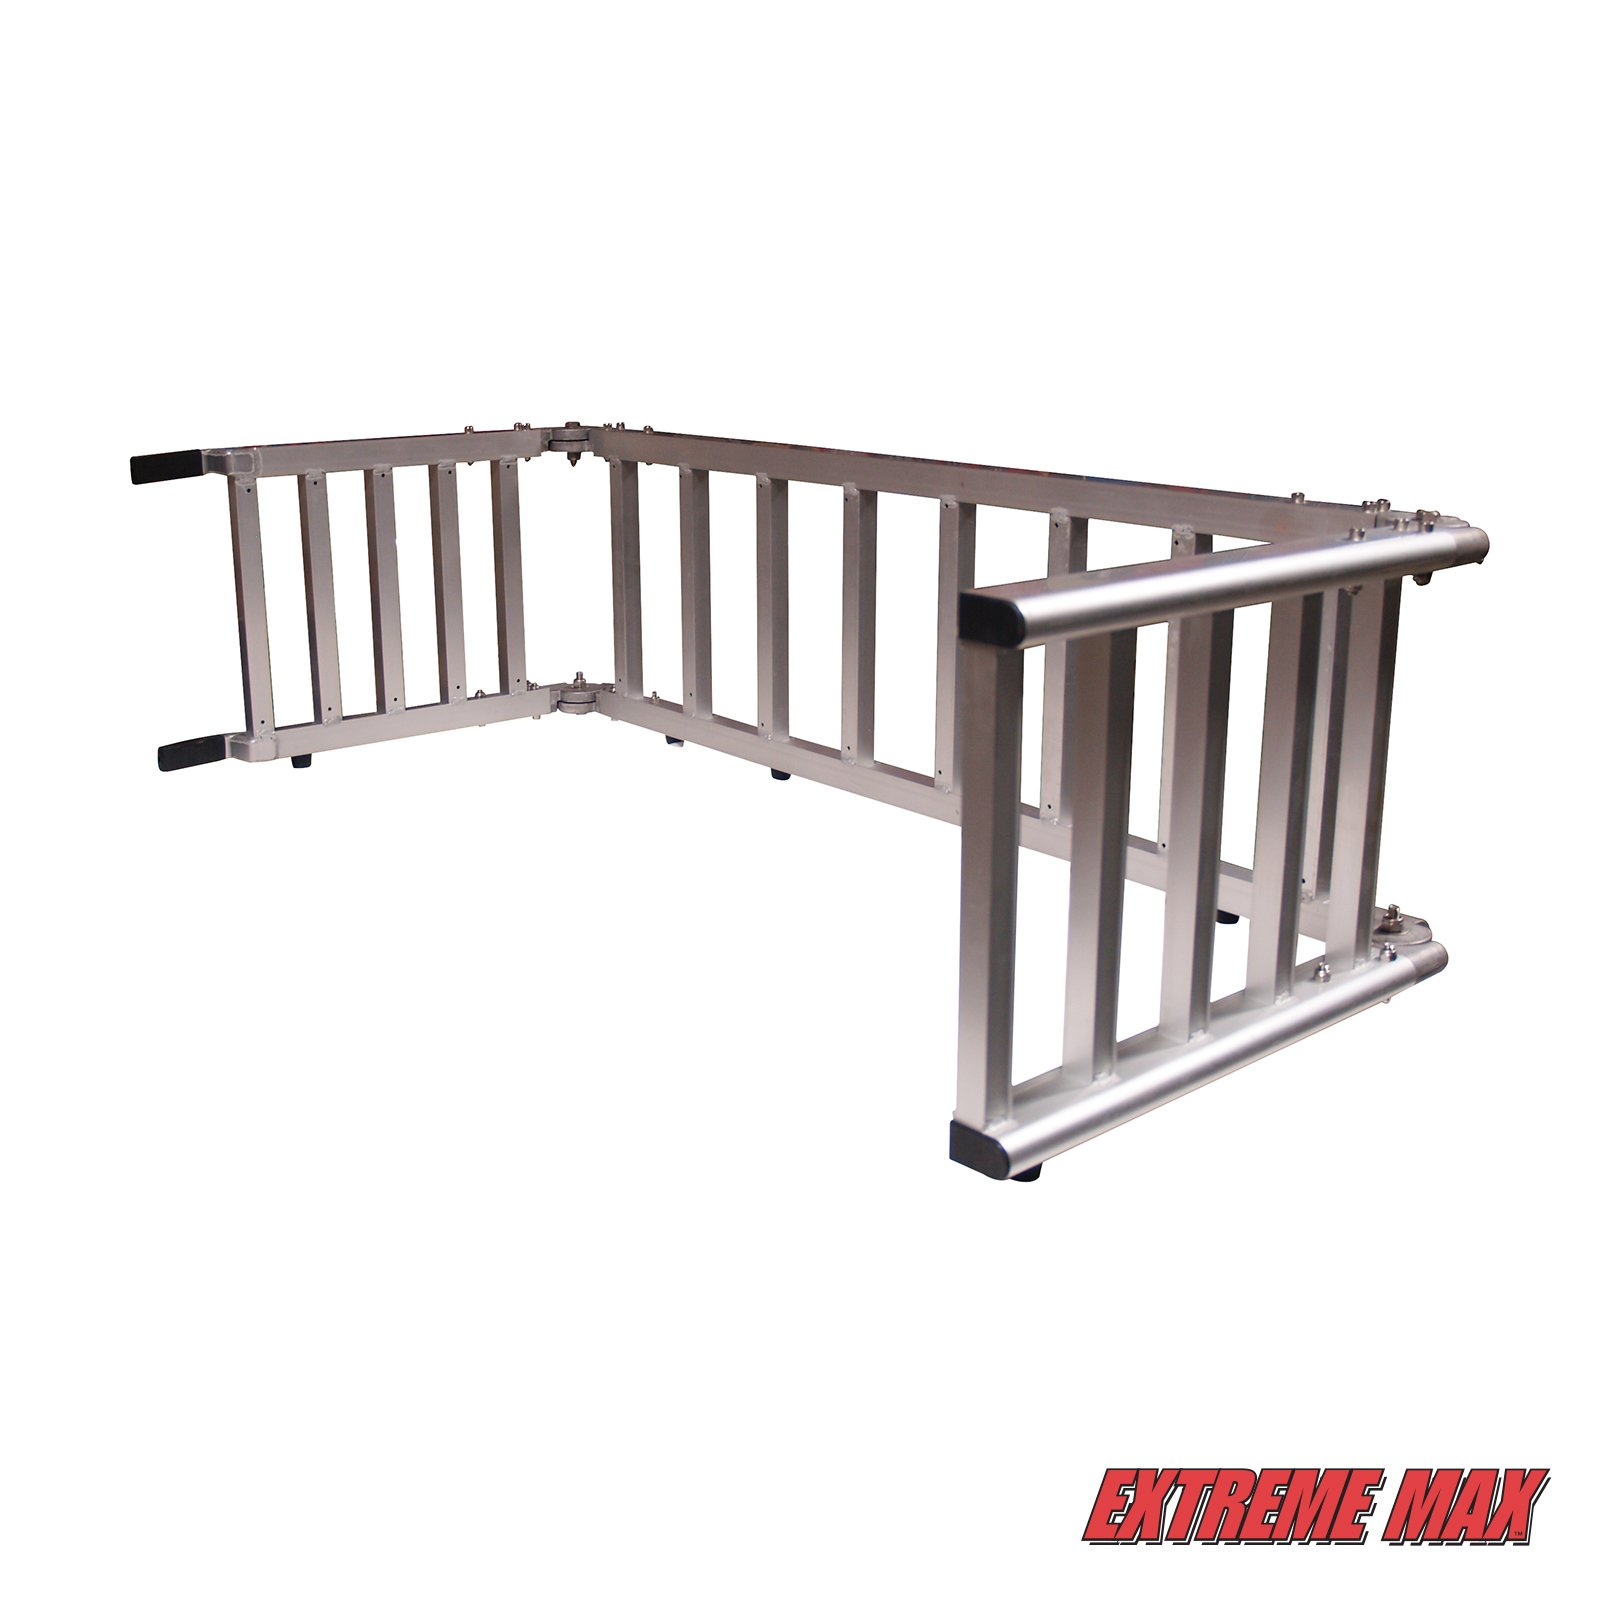 Extreme Max (NR002S-SLVR) Motorcycle RampXtender Aluminum Ramp Set and Tailgate Extender Combo by Extreme Max (Image #5)